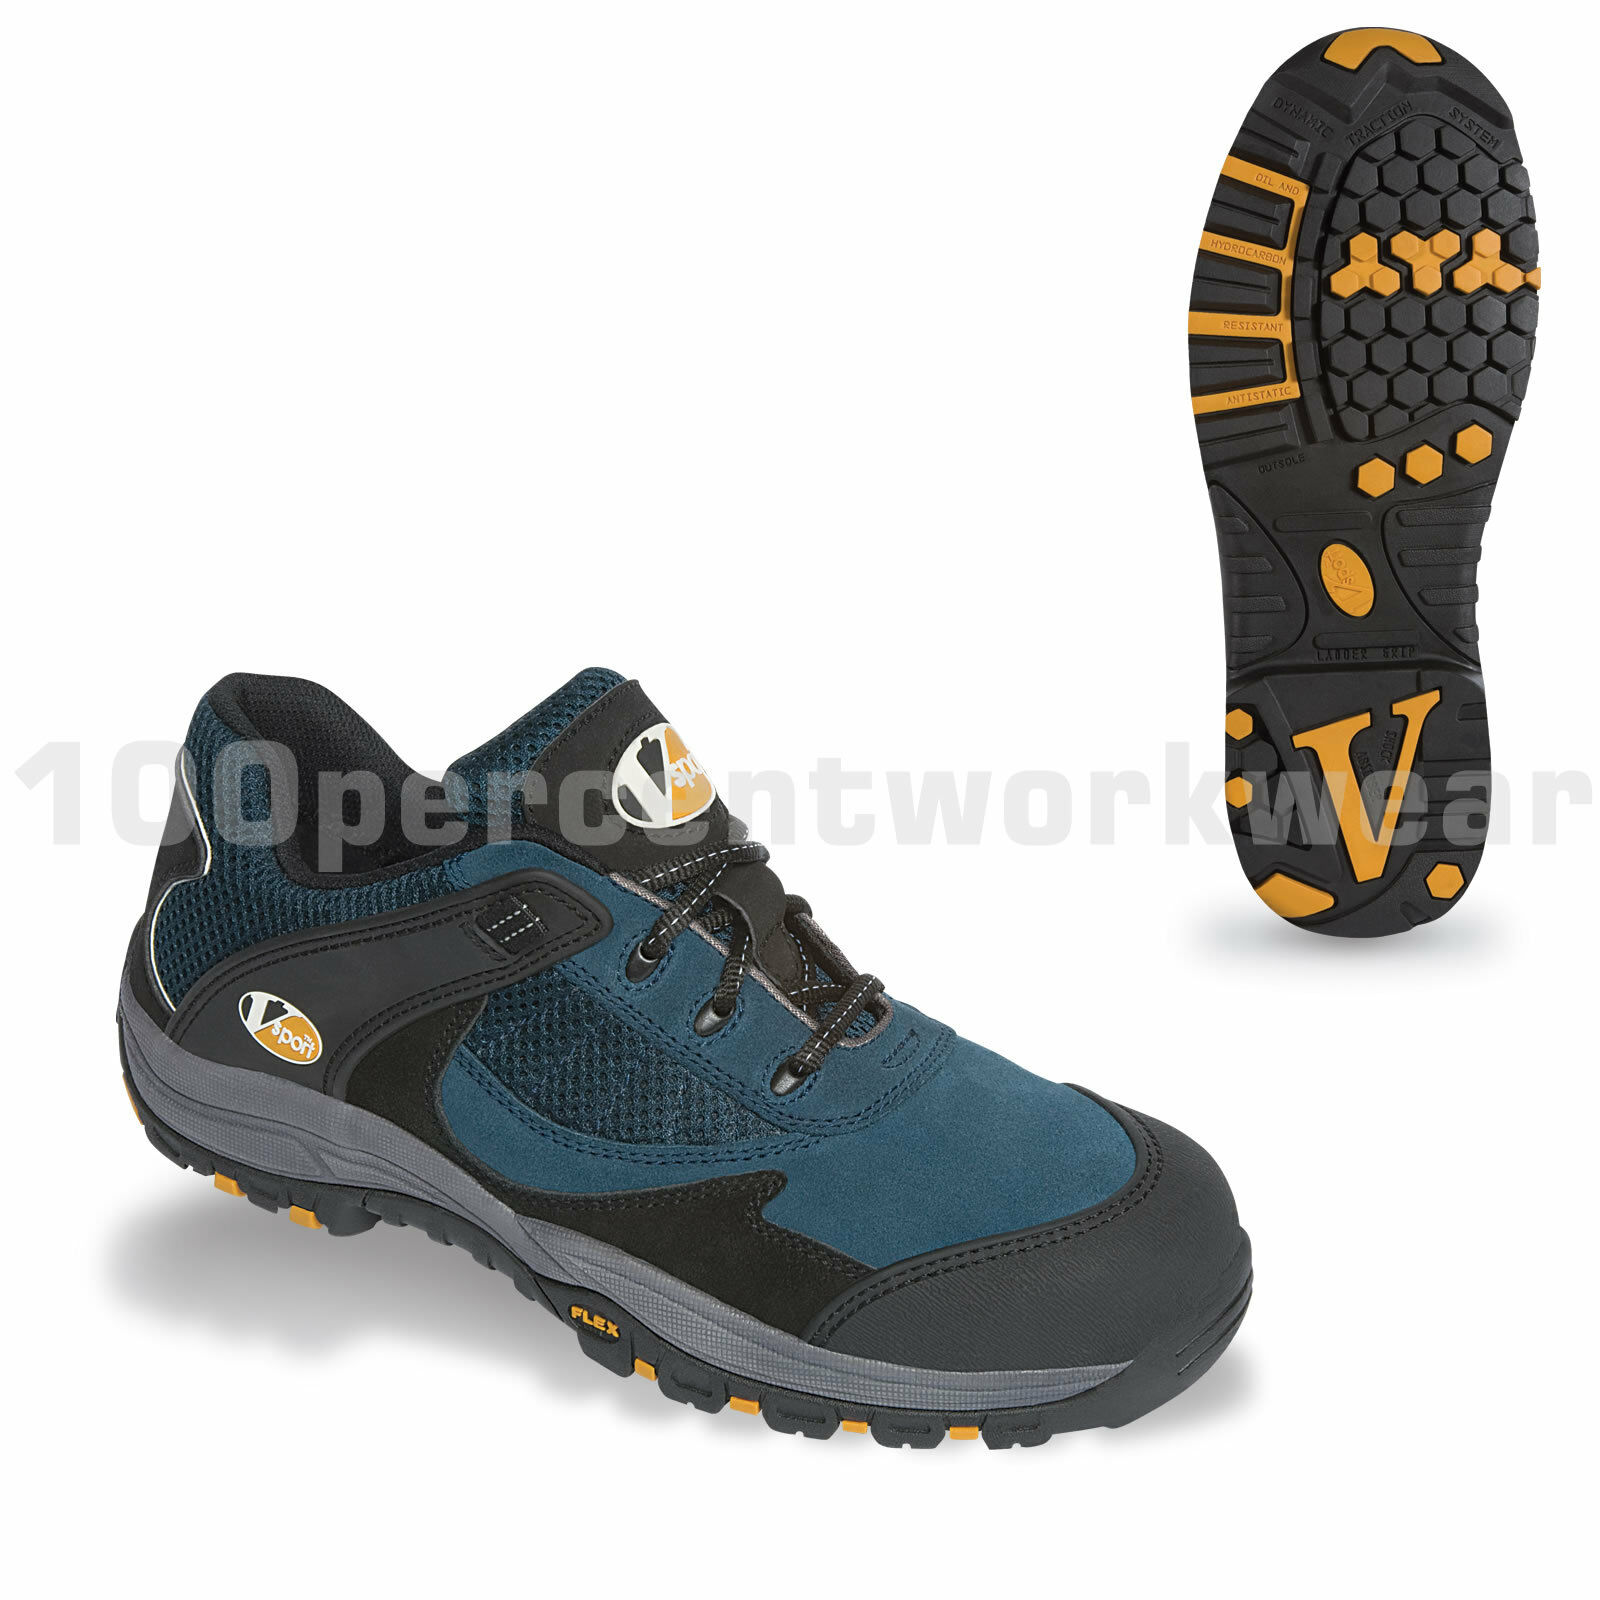 V12 Vtech Safety VS400 PITSTOP Work Trainers Schuhes Blau Free Suede Toe Cap Metal Free Blau 2780c0